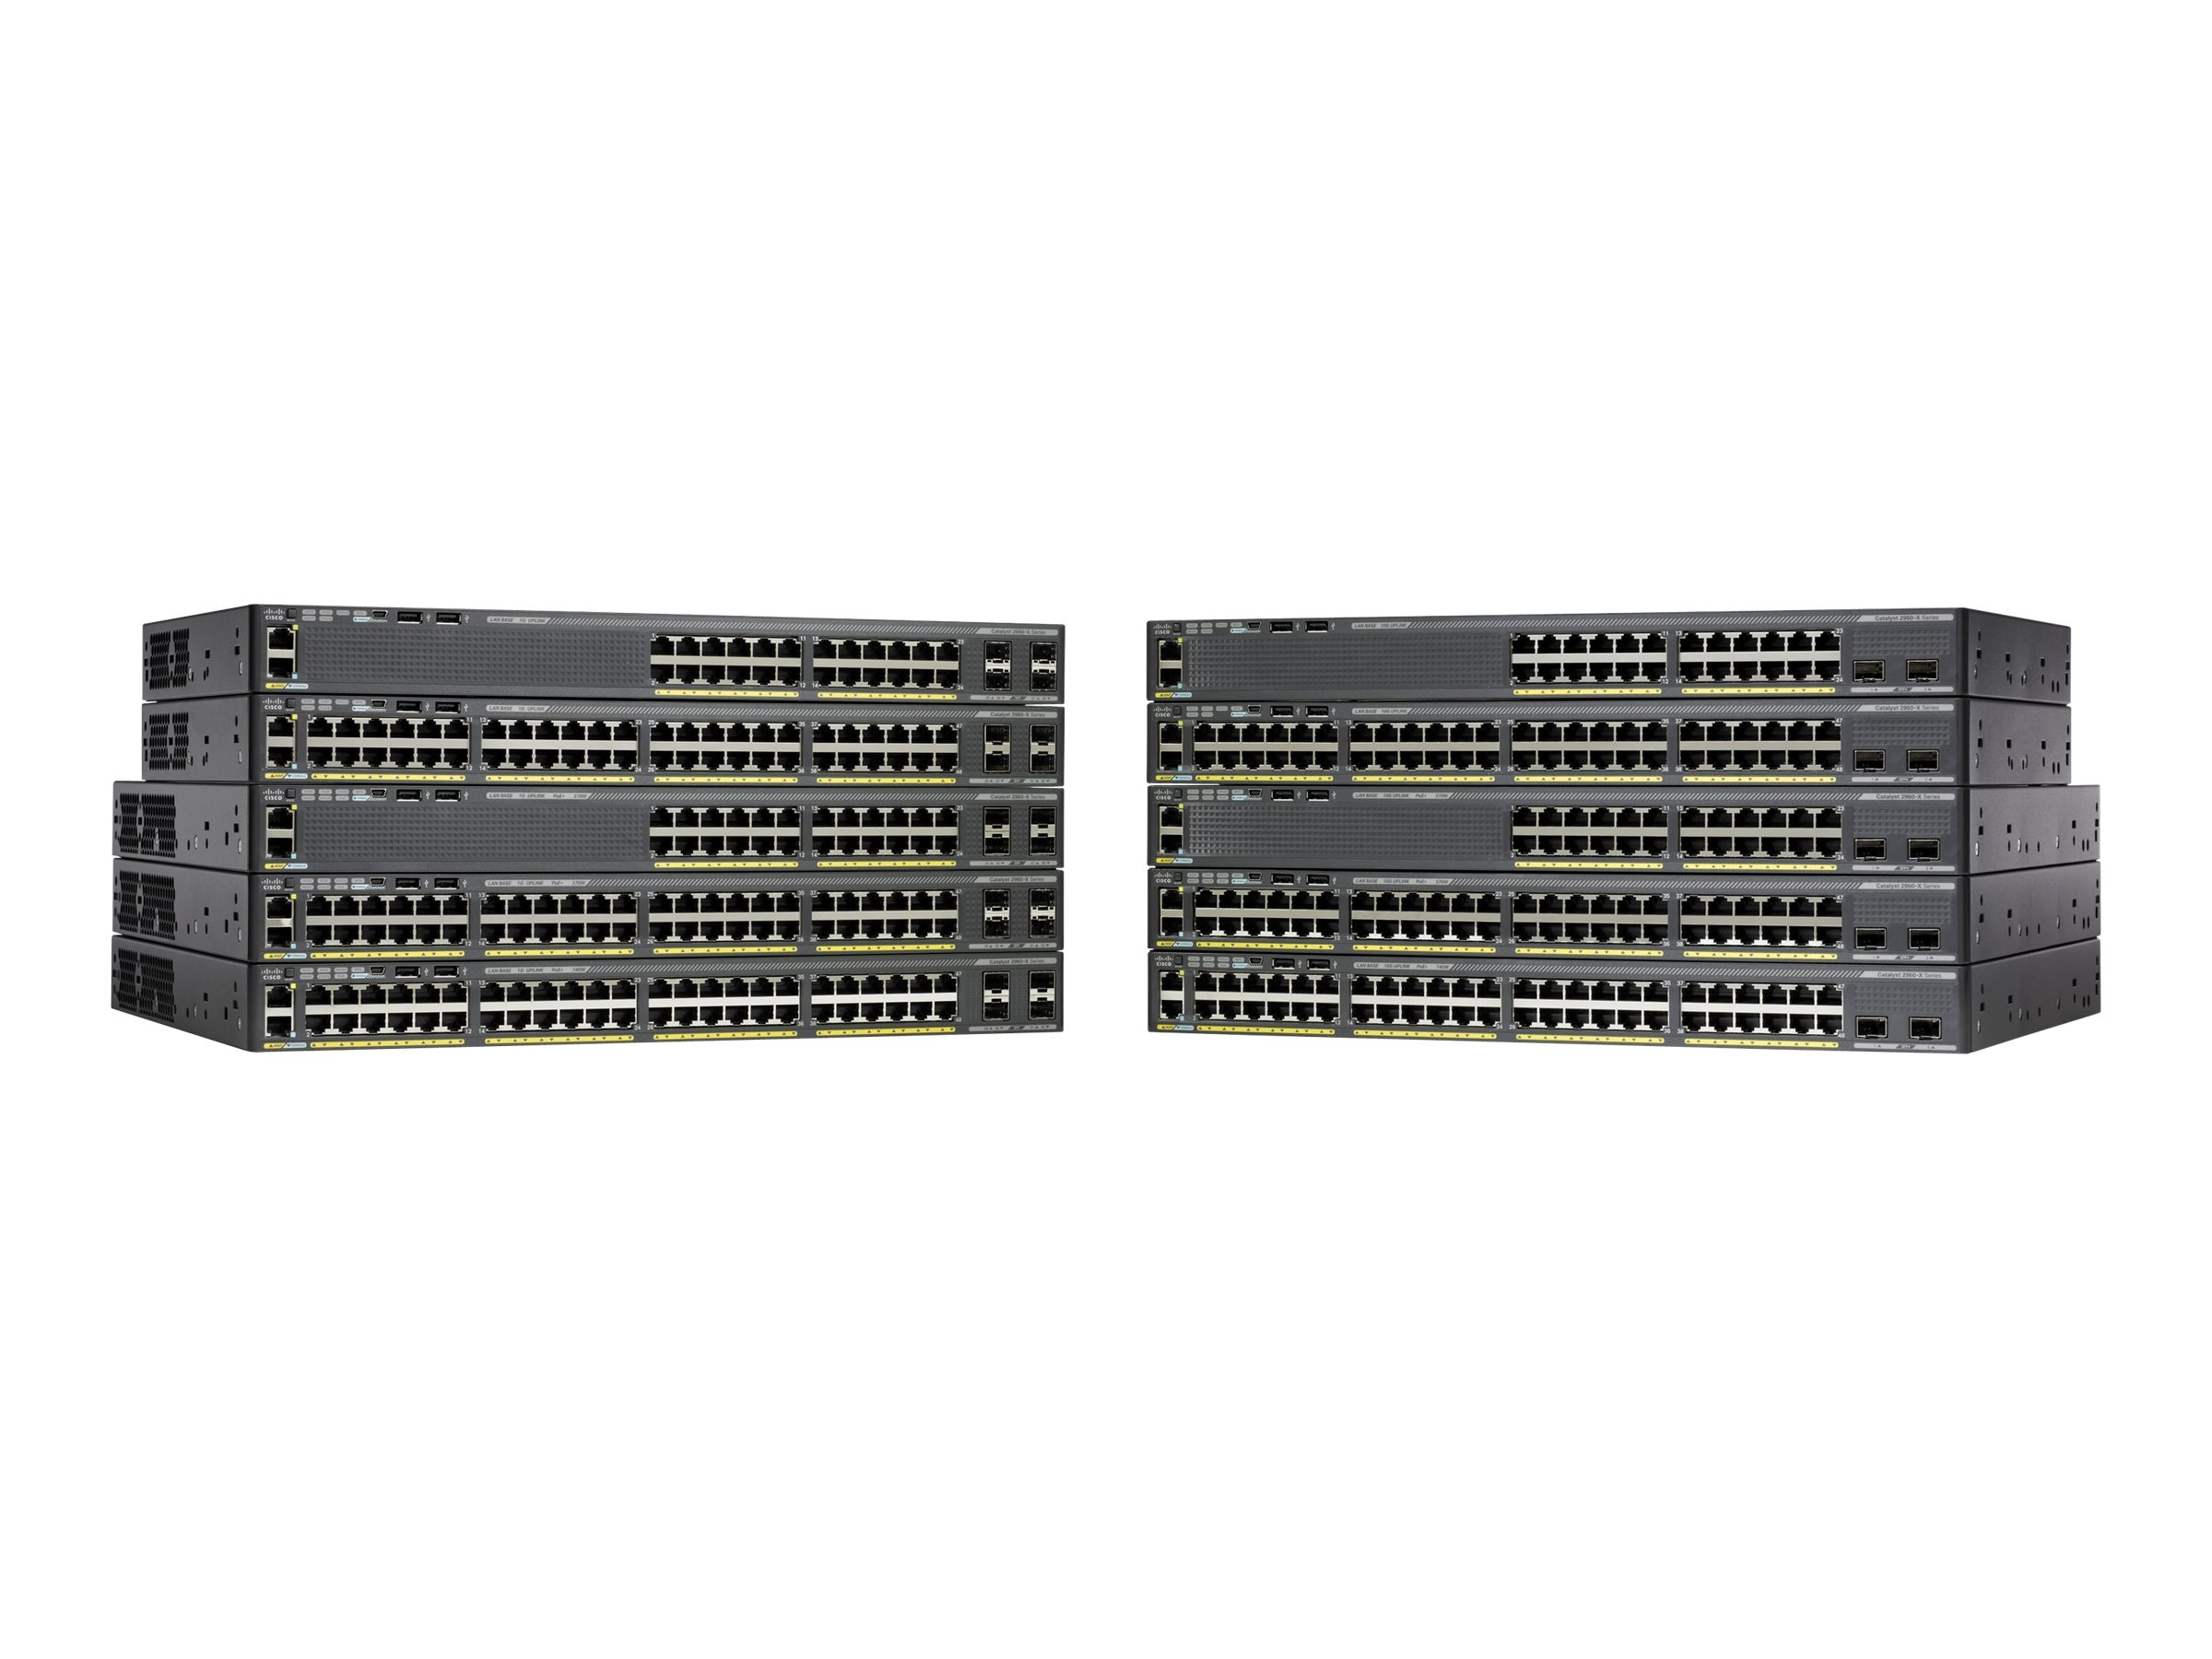 Cisco Catalyst 2960-XR 24 GIGE 4X1G SFP IP LITE, WS-C2960XR-24TS-I